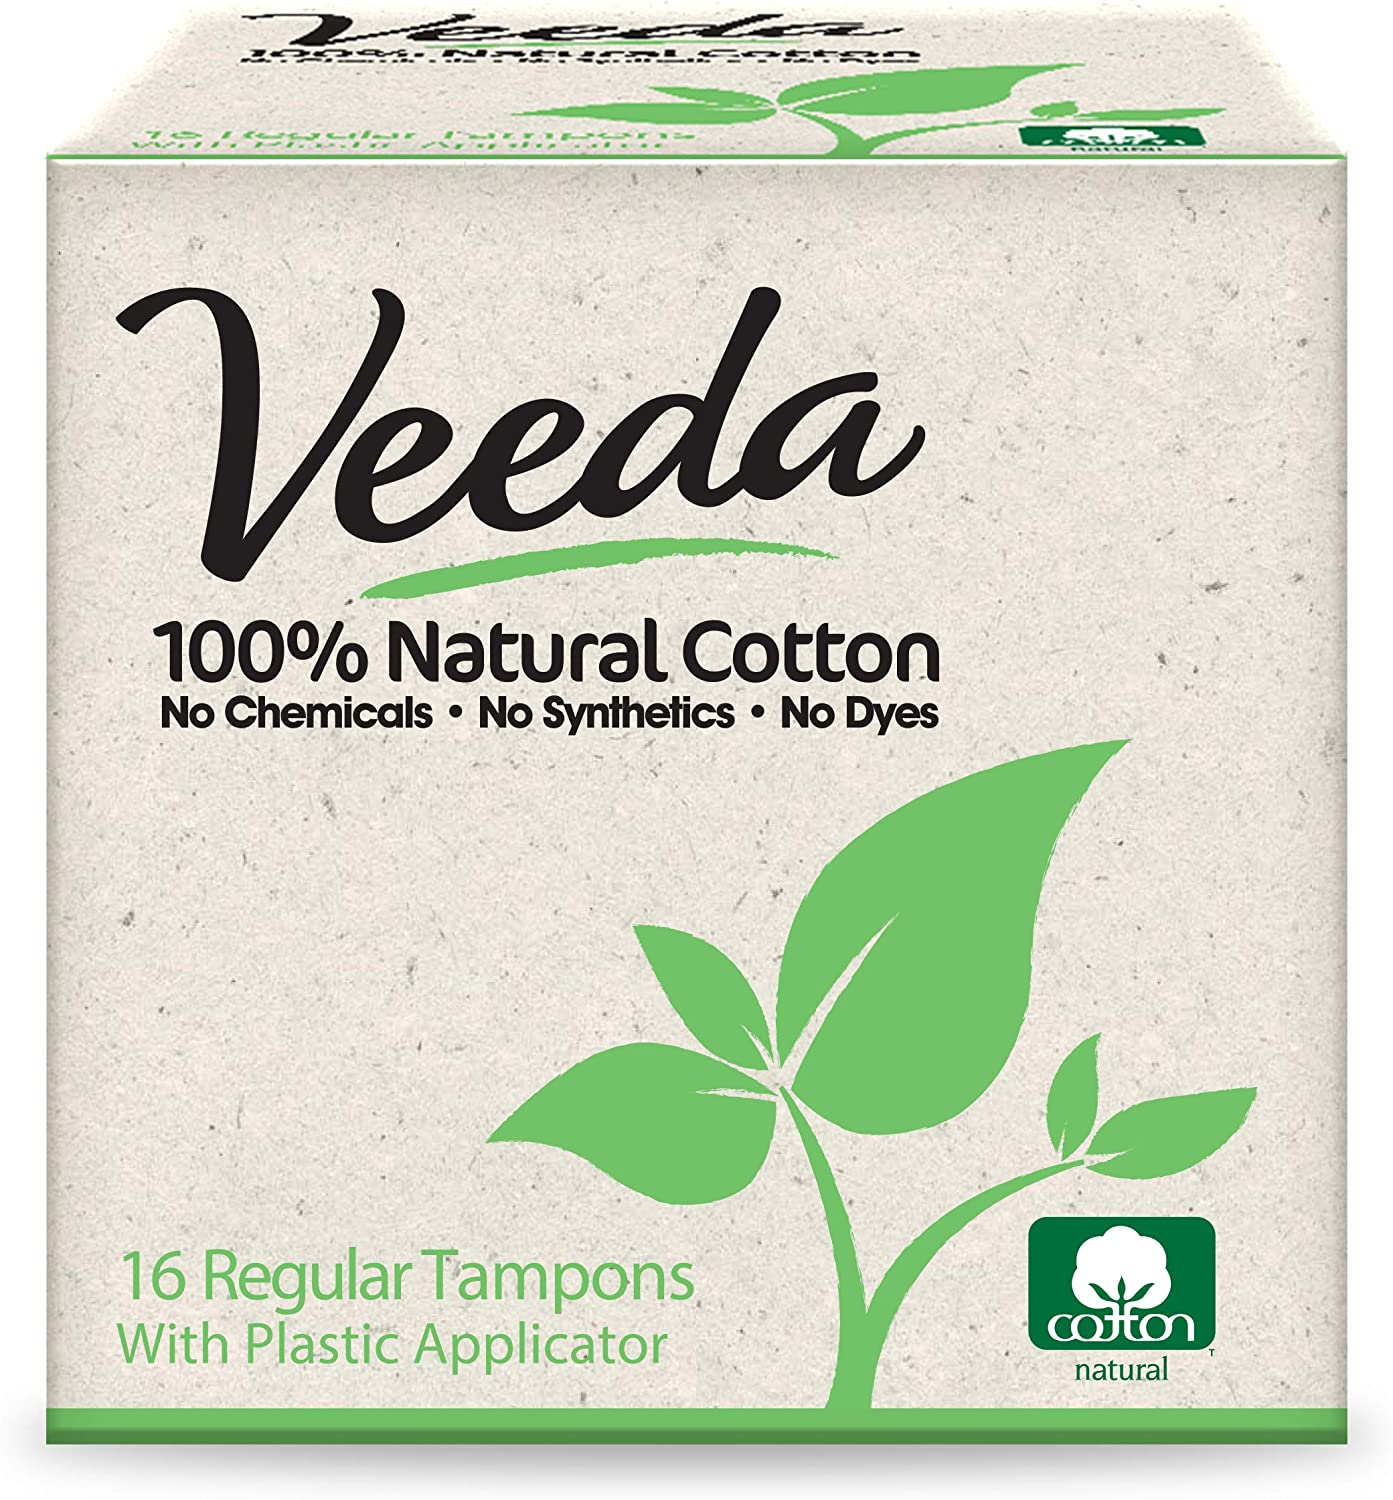 Veeda 100% Natural Cotton Compact Toxin BPA-Free Applicator Tampons